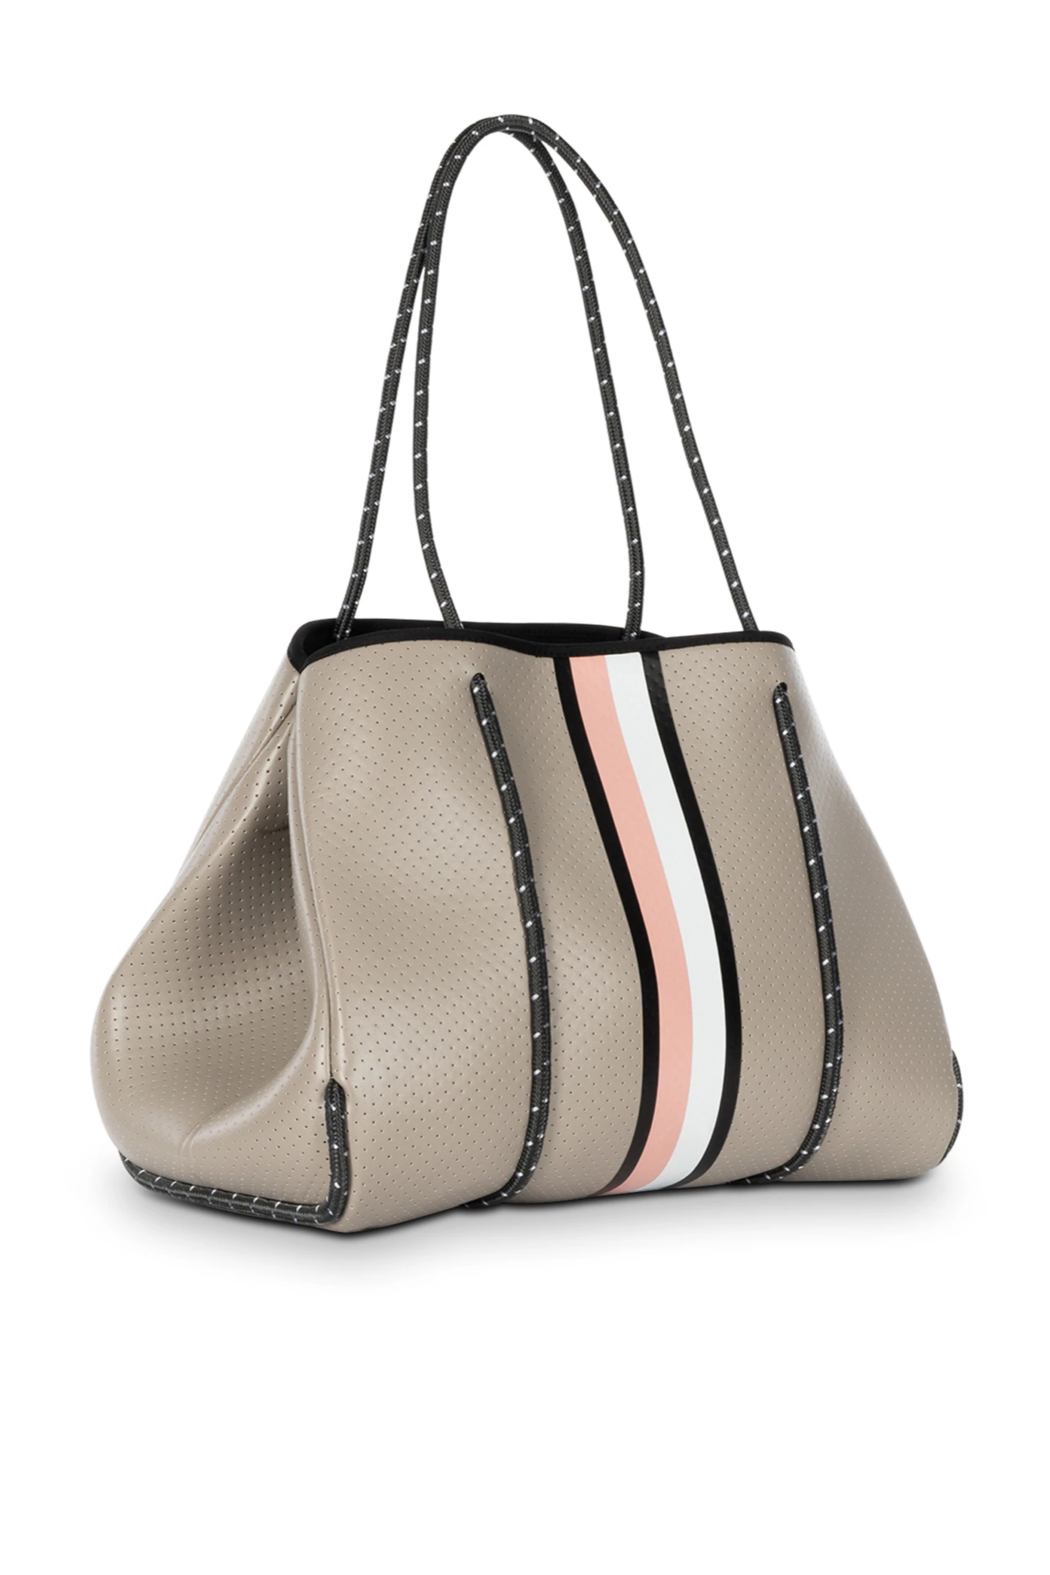 Haute Shore Bags Greyson Neoprene Tote - Side Cropped Image